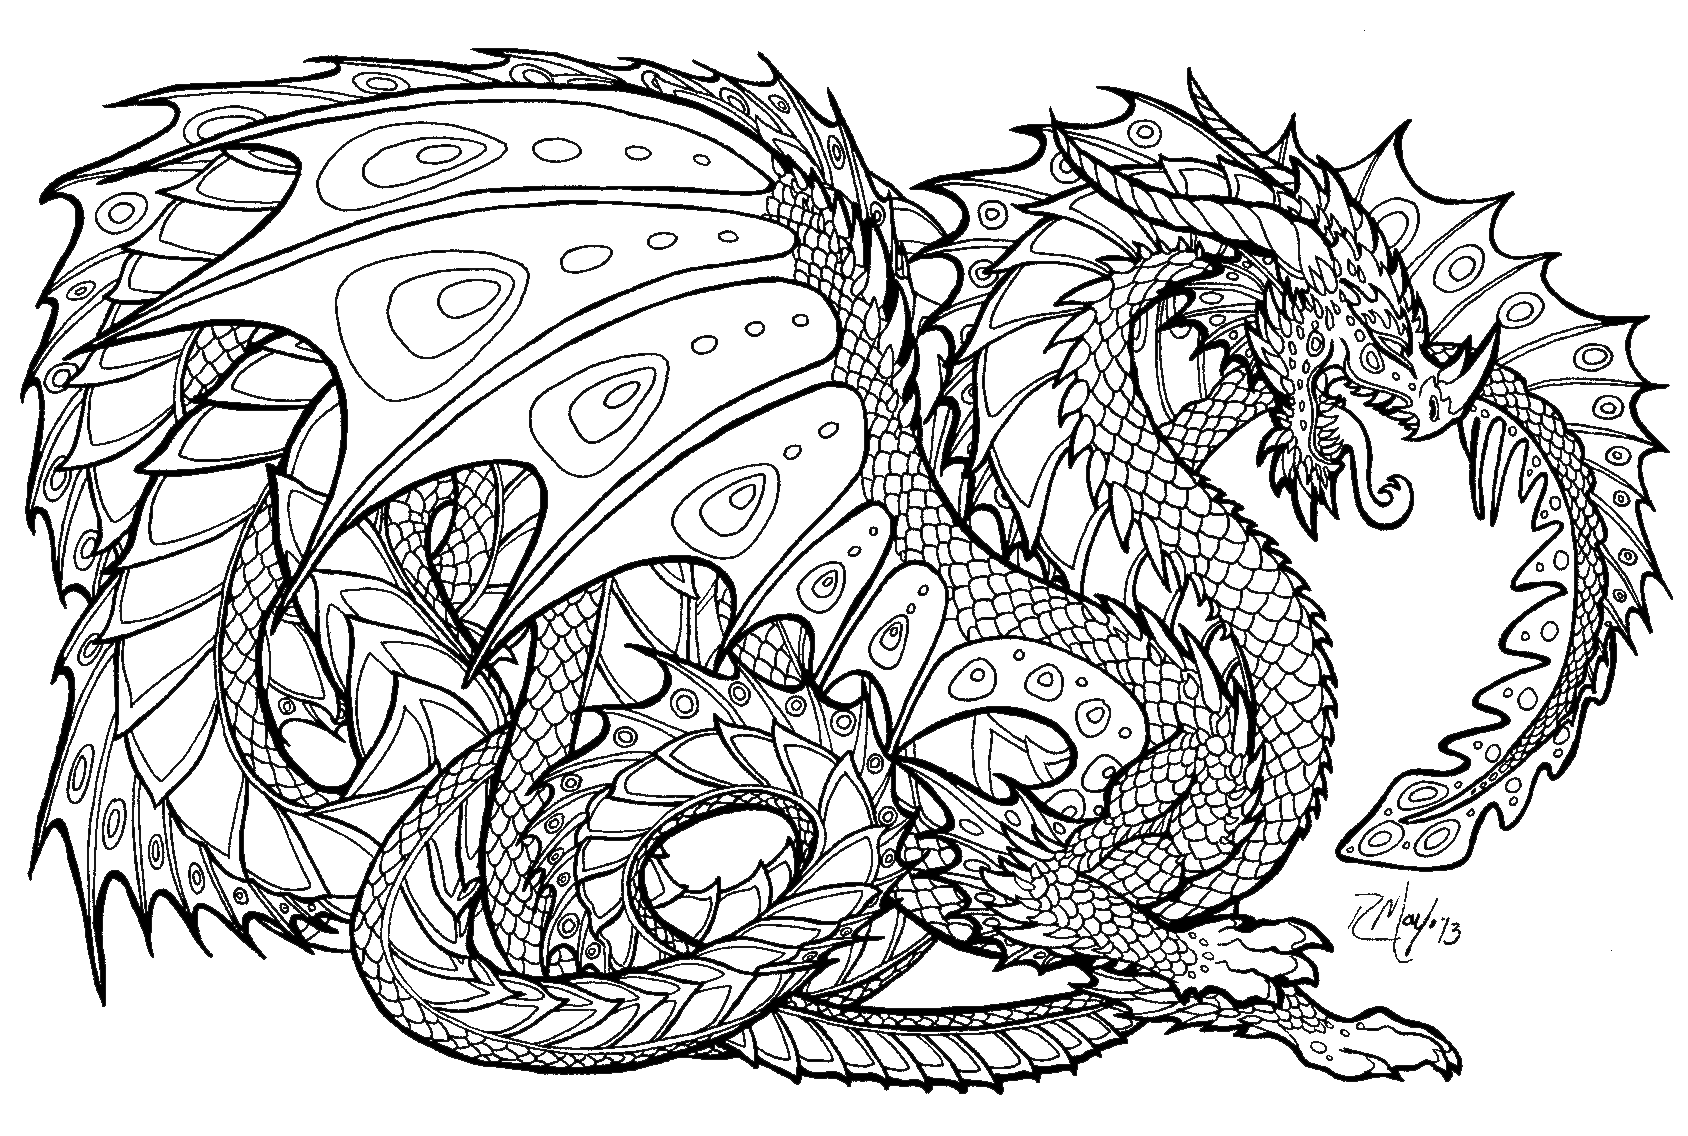 coloring pages with dragons - photo#4